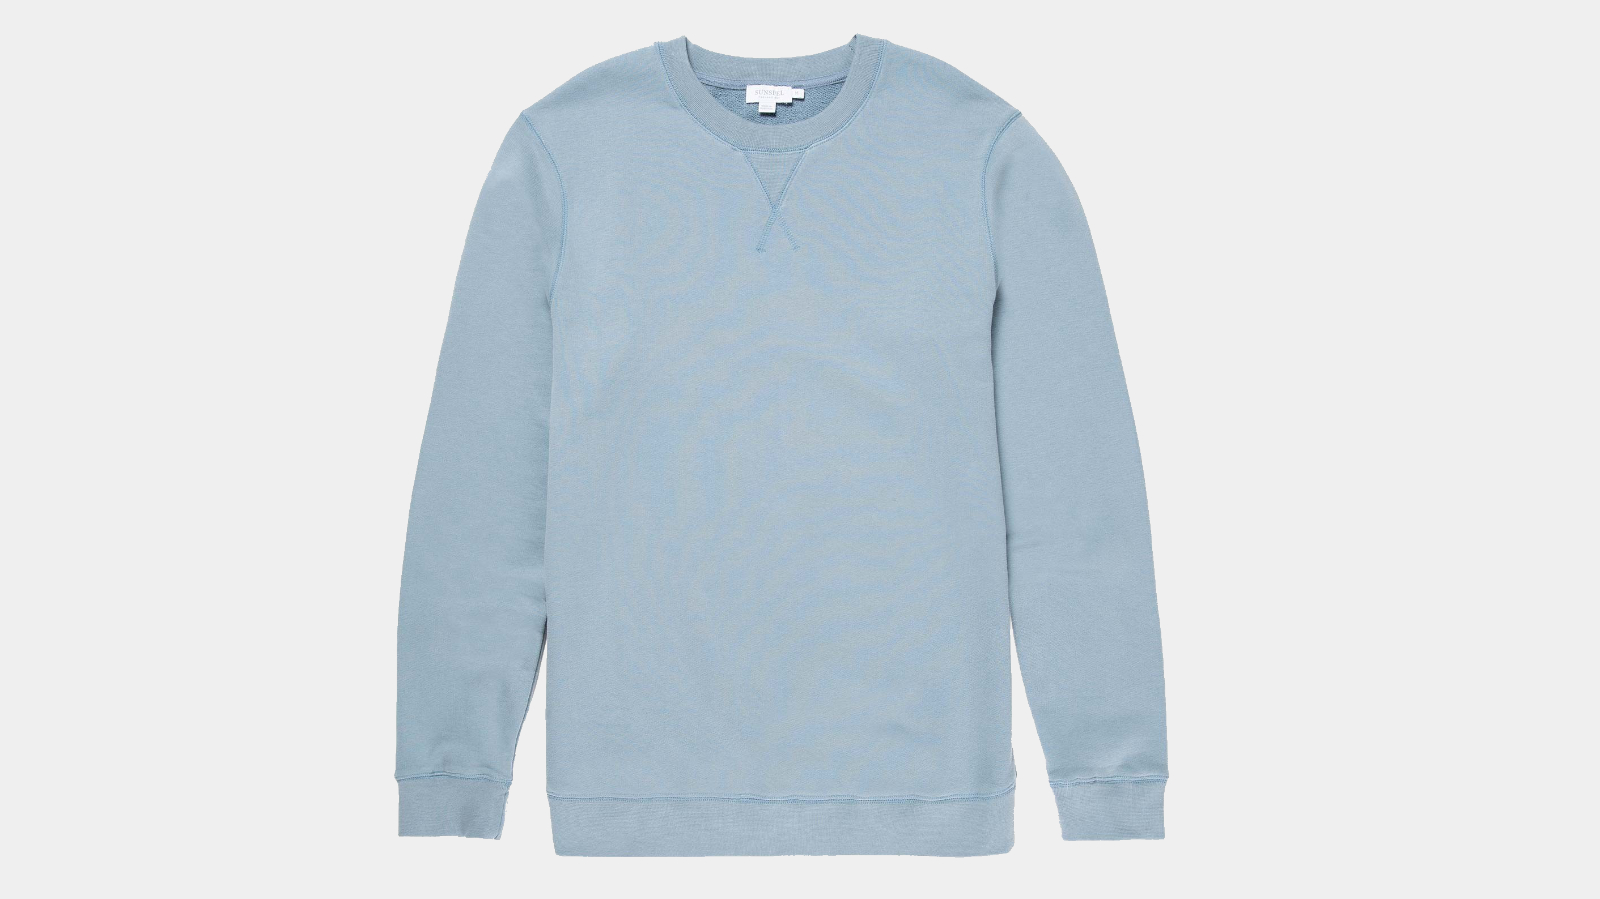 Sunspel Sweatshirt Men's Winter Fashion